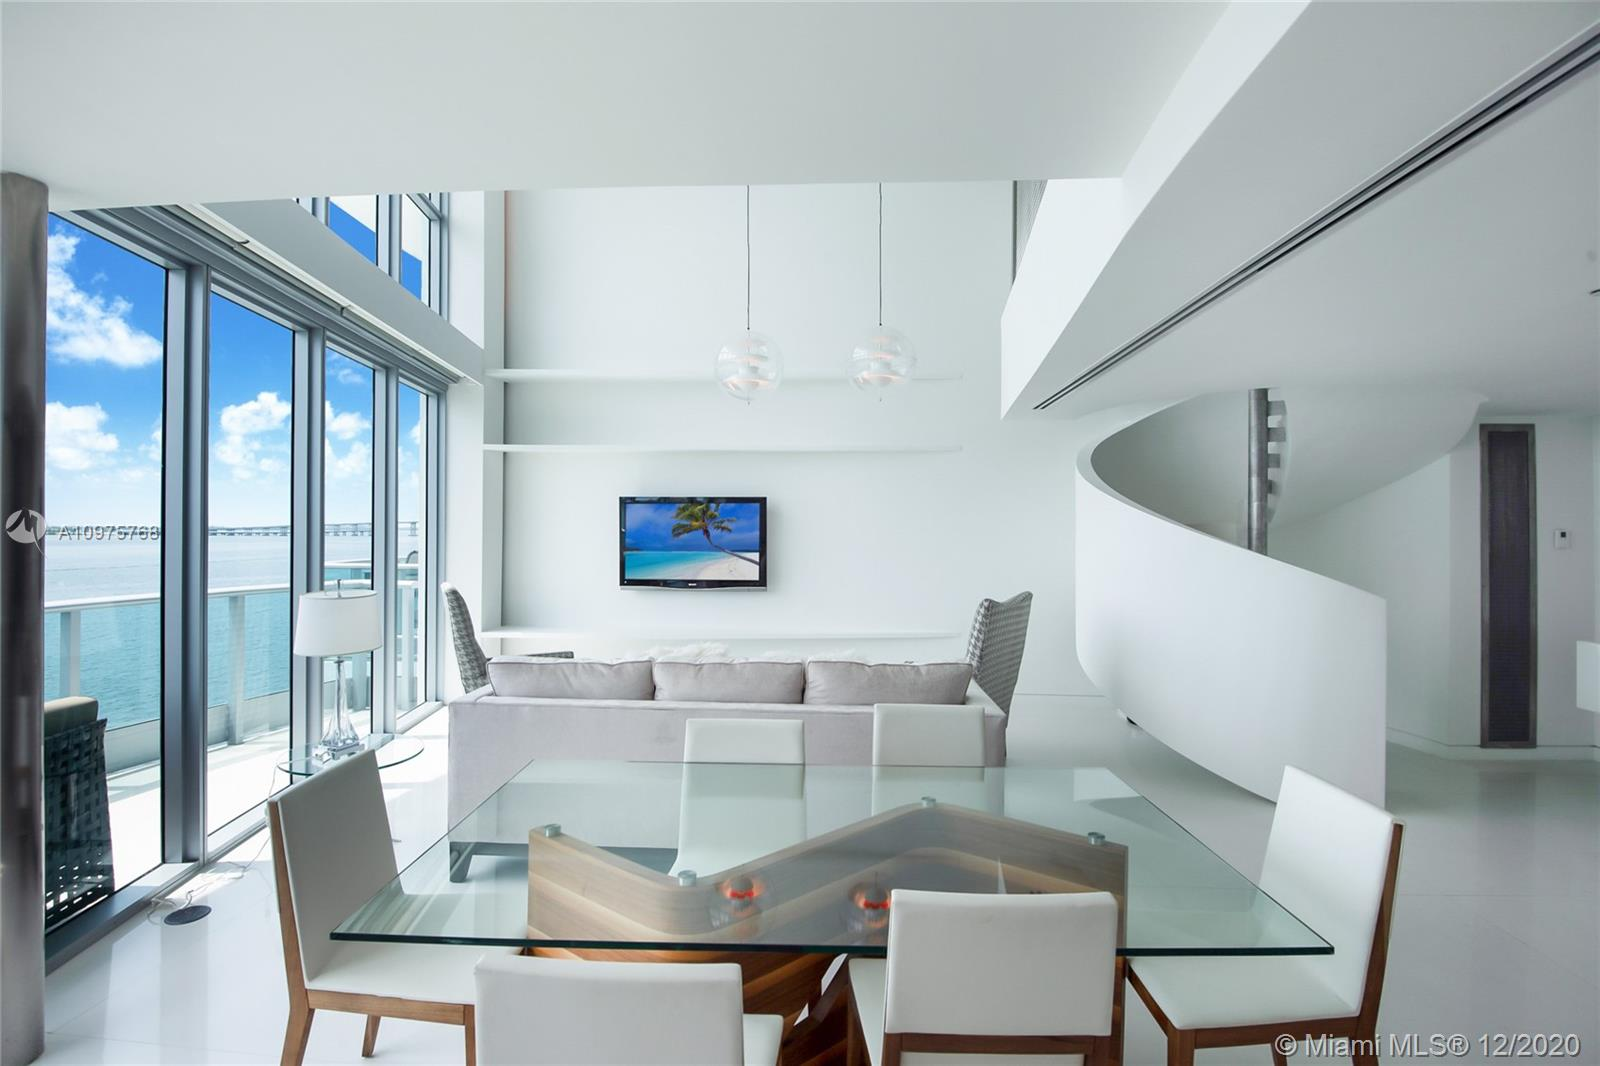 Take in sweeping Bay views from every angle of this unique, tri-level unit at JADE BRICKELL. The 2/2.5 Bay Loft sets itself apart with a complete, custom renovation defined by clean lines and minimalist sophistication. Upgrades include custom cabinetry and closets, Miele and Sub-Zero appliances, and a stunning architectural staircase. First level includes living and dining spaces, second level features Master suite and den, and third level opens to additional bedroom/living space with a large, secondary balcony. Located in the most coveted spot on Brickell Bay Drive, the Jade offers unfettered access to cosmopolitan life on Brickell, while providing a quiet haven when the sun sets. You can count on unobstructed Bay views forever. A Very Special Home.